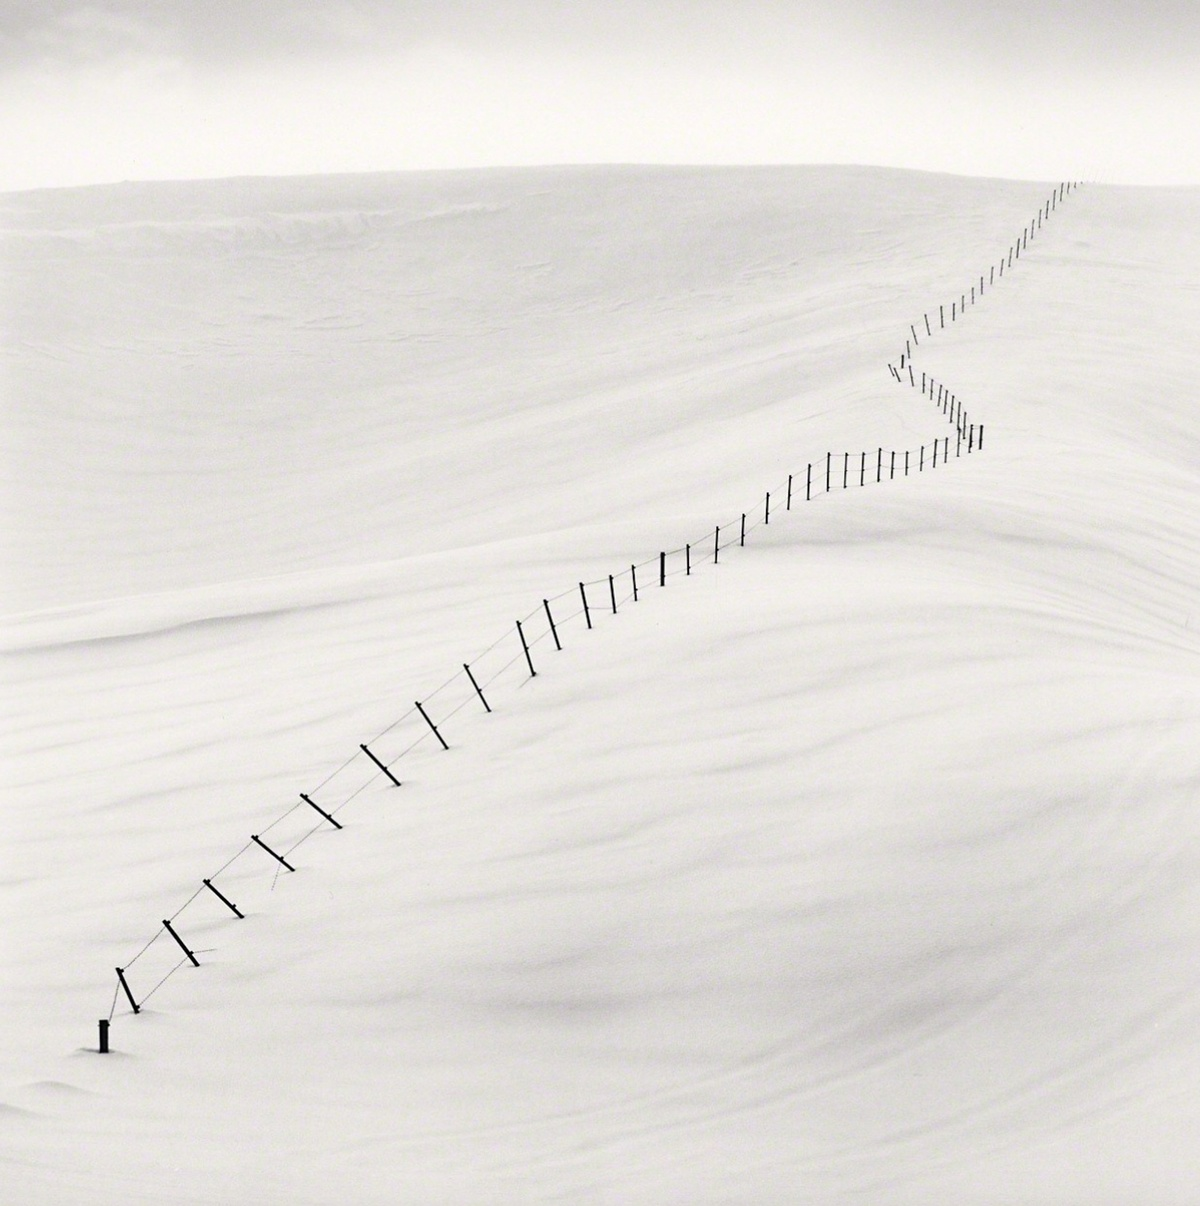 Michael Kenna Hillside Fence, Study 7, Teshikaga, Hokkaido, Japan 2004 Sepia Toned Silver Gelatin Print From An Edition Of 25 8 x 8 Inches